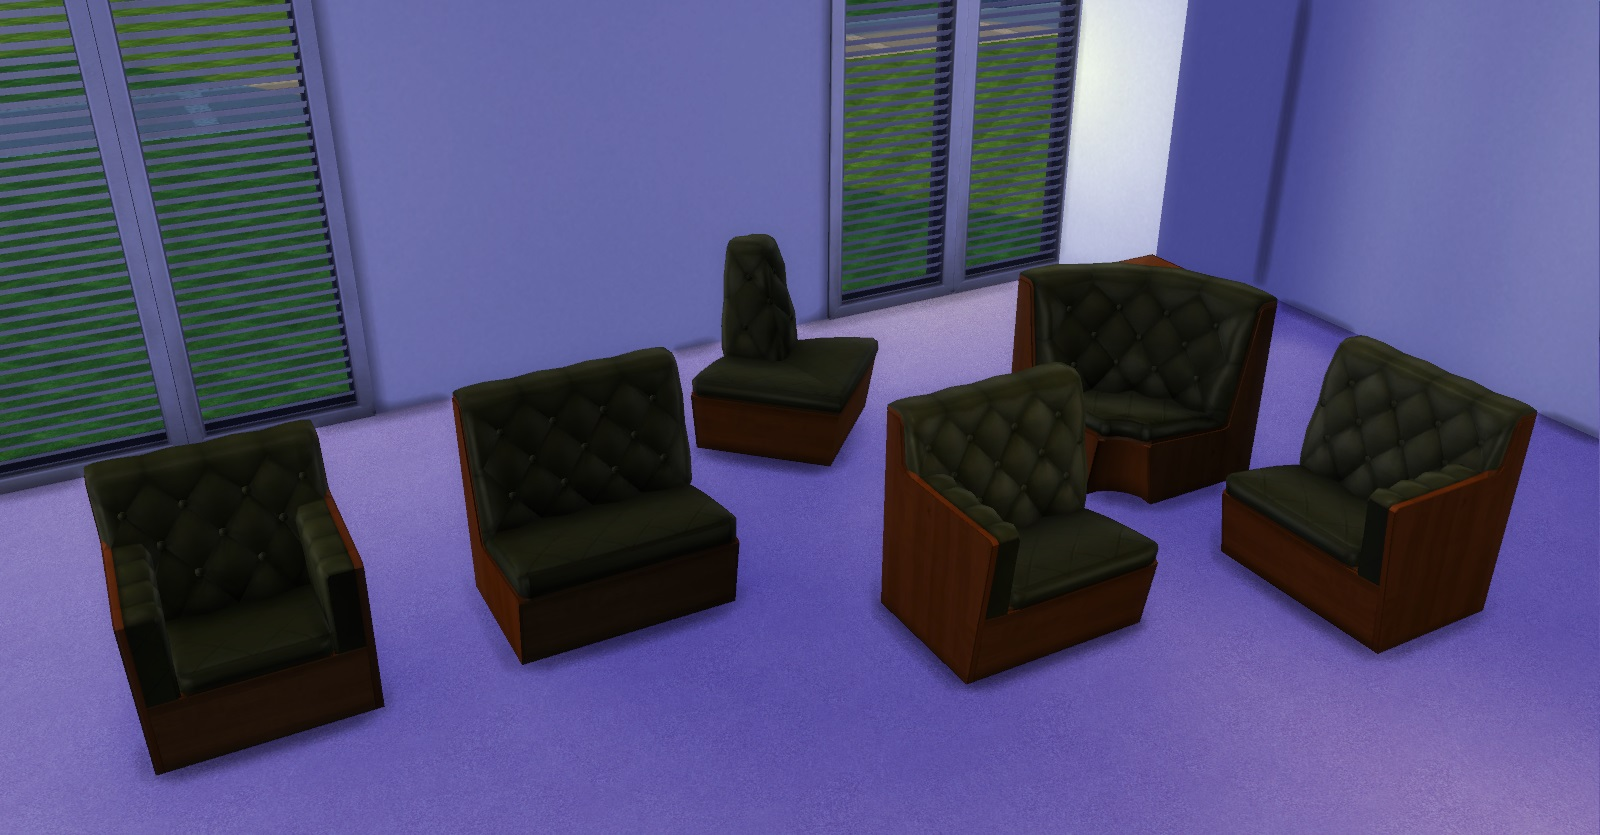 Since its not possible yet to create a sectional chair or sofa for the game each one serves as a living chair and can all be joined to create a sectional ... : sims 3 sectional - Sectionals, Sofas & Couches